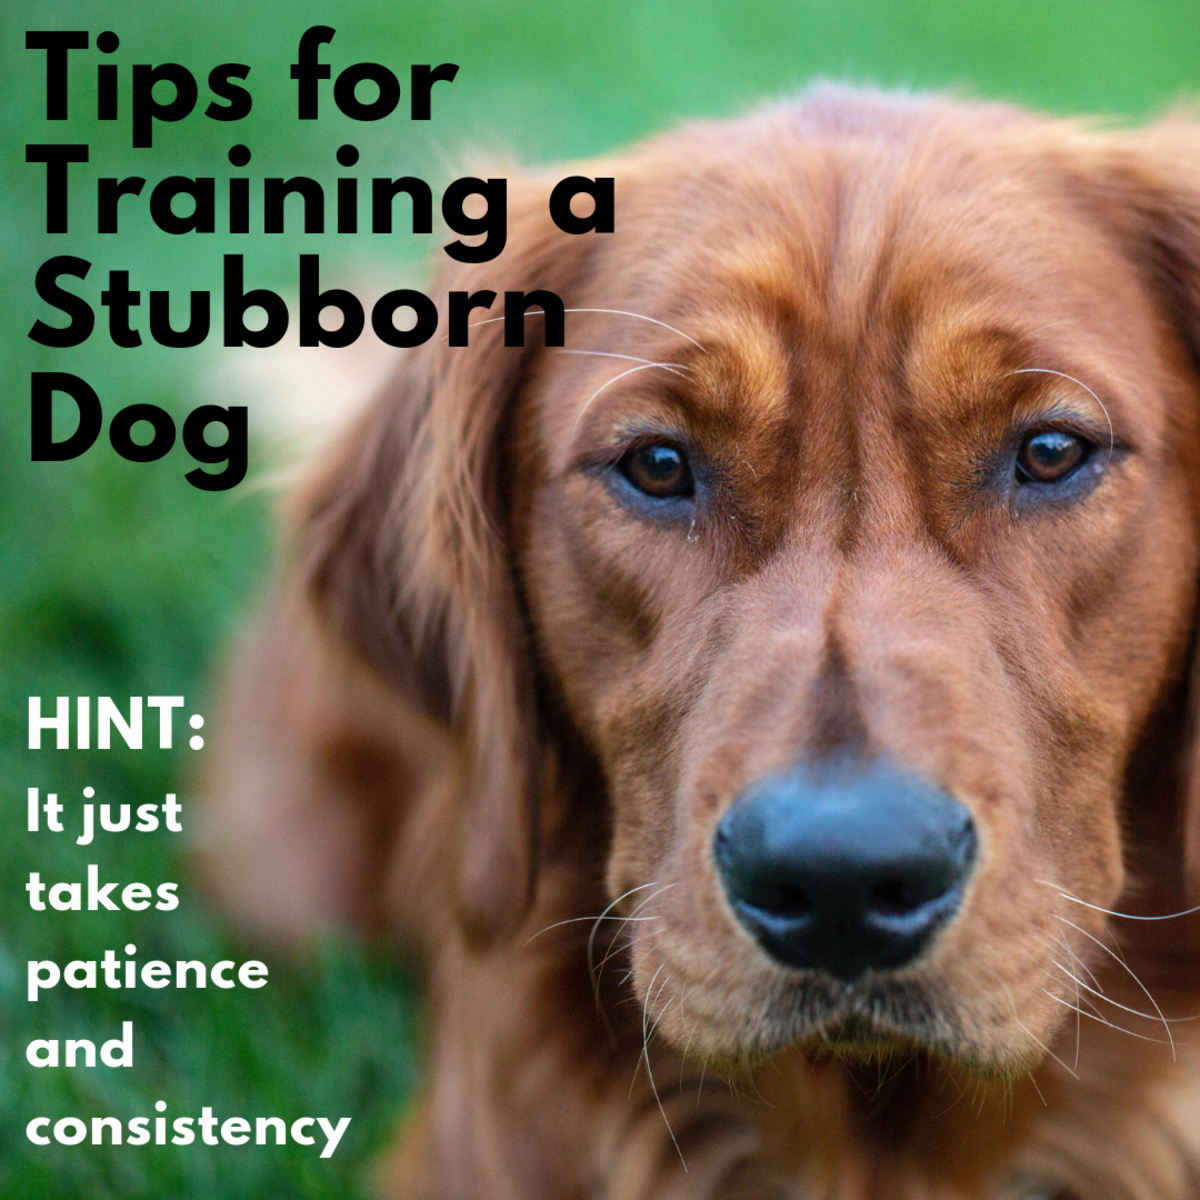 How to Train Stubborn Dogs